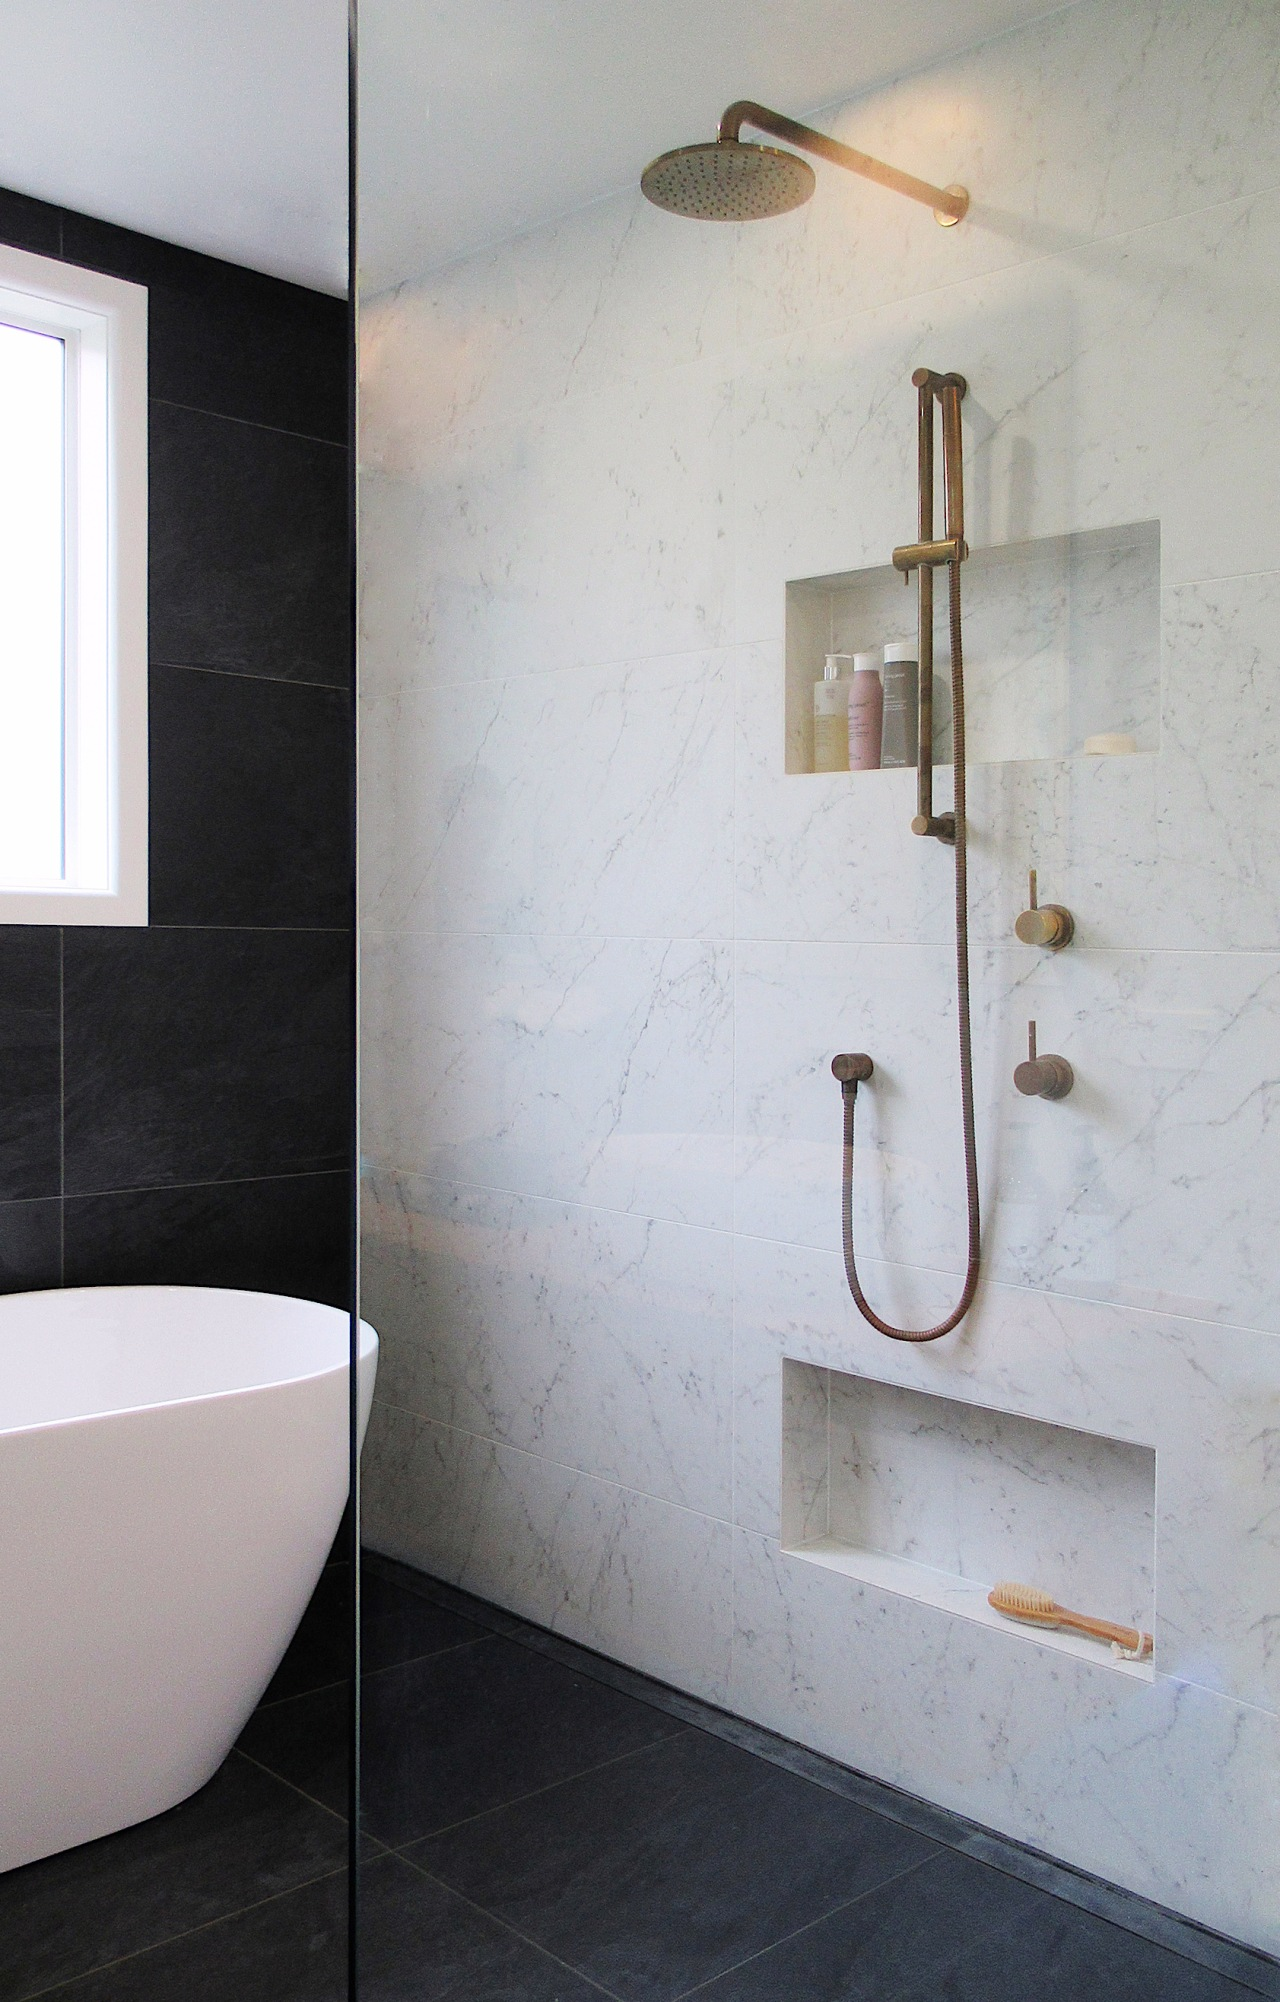 The living finish aged brass tapware is on-trend, gray